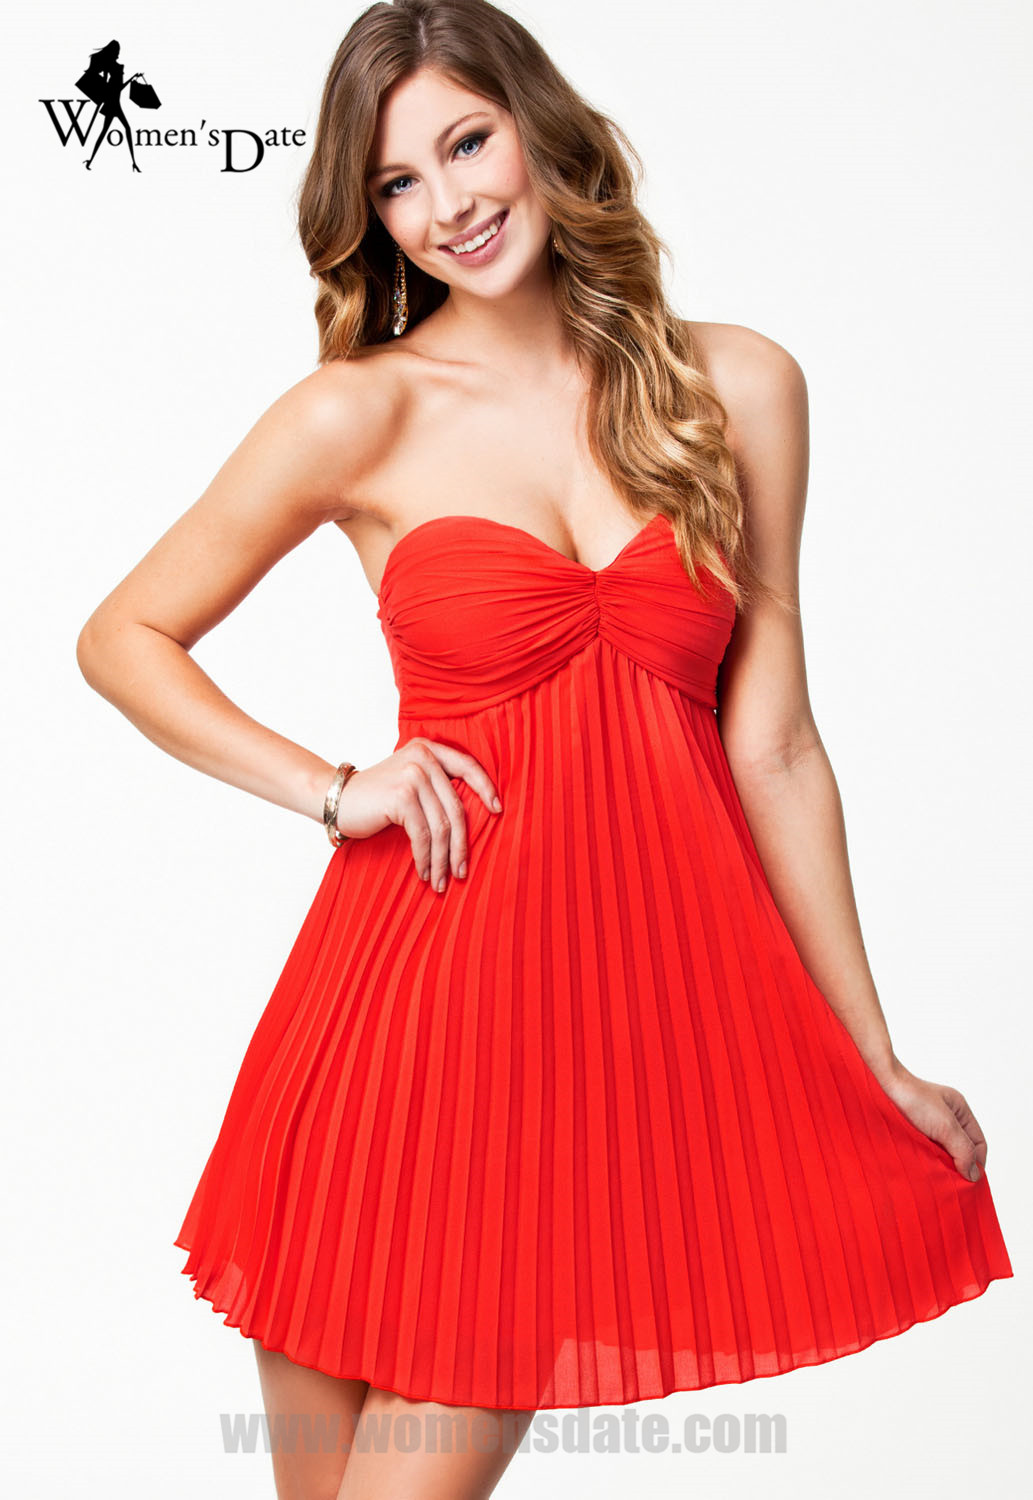 Compare Prices on Cute Strapless Dresses- Online Shopping/Buy Low ...